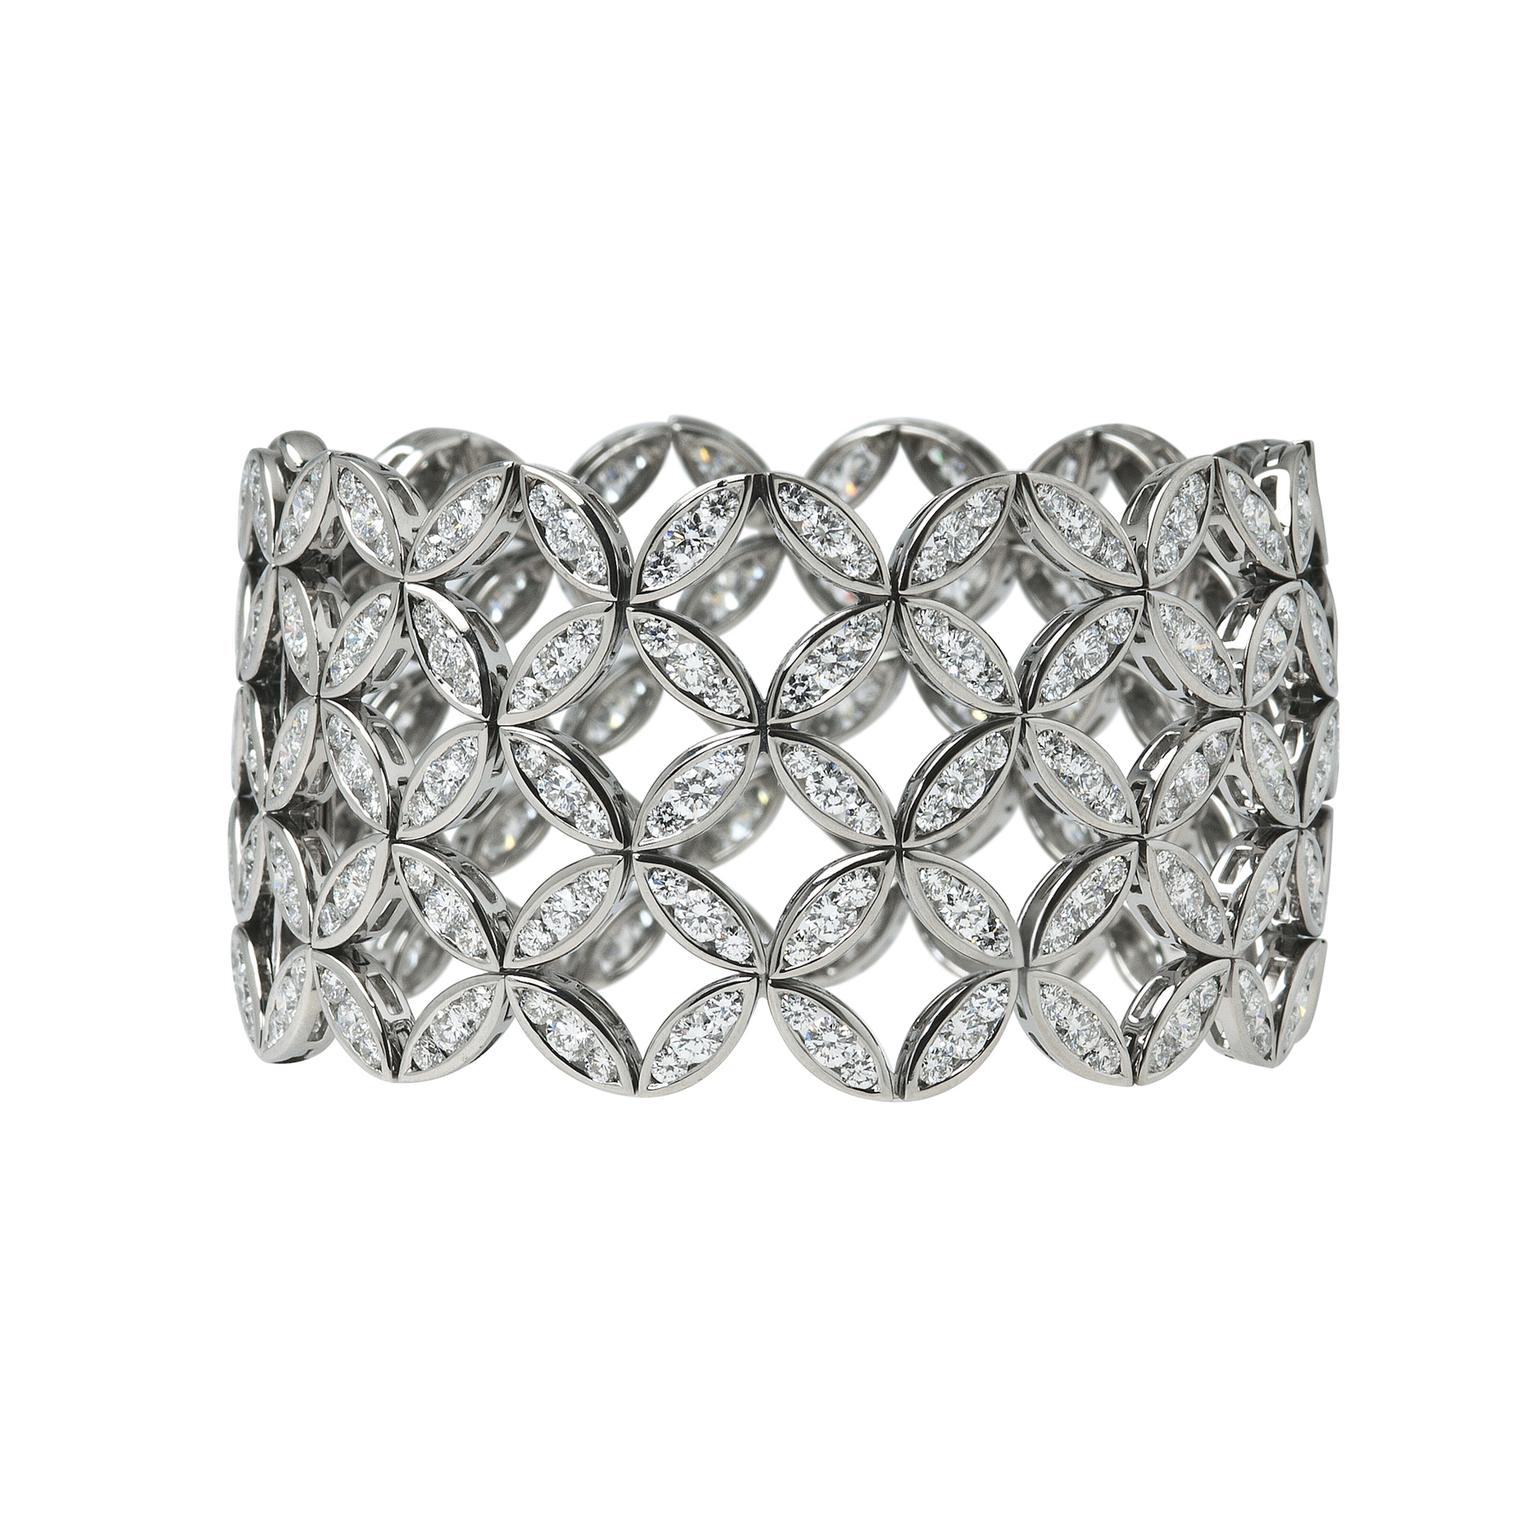 Ming Lampson Japanese Lattice diamond cuff